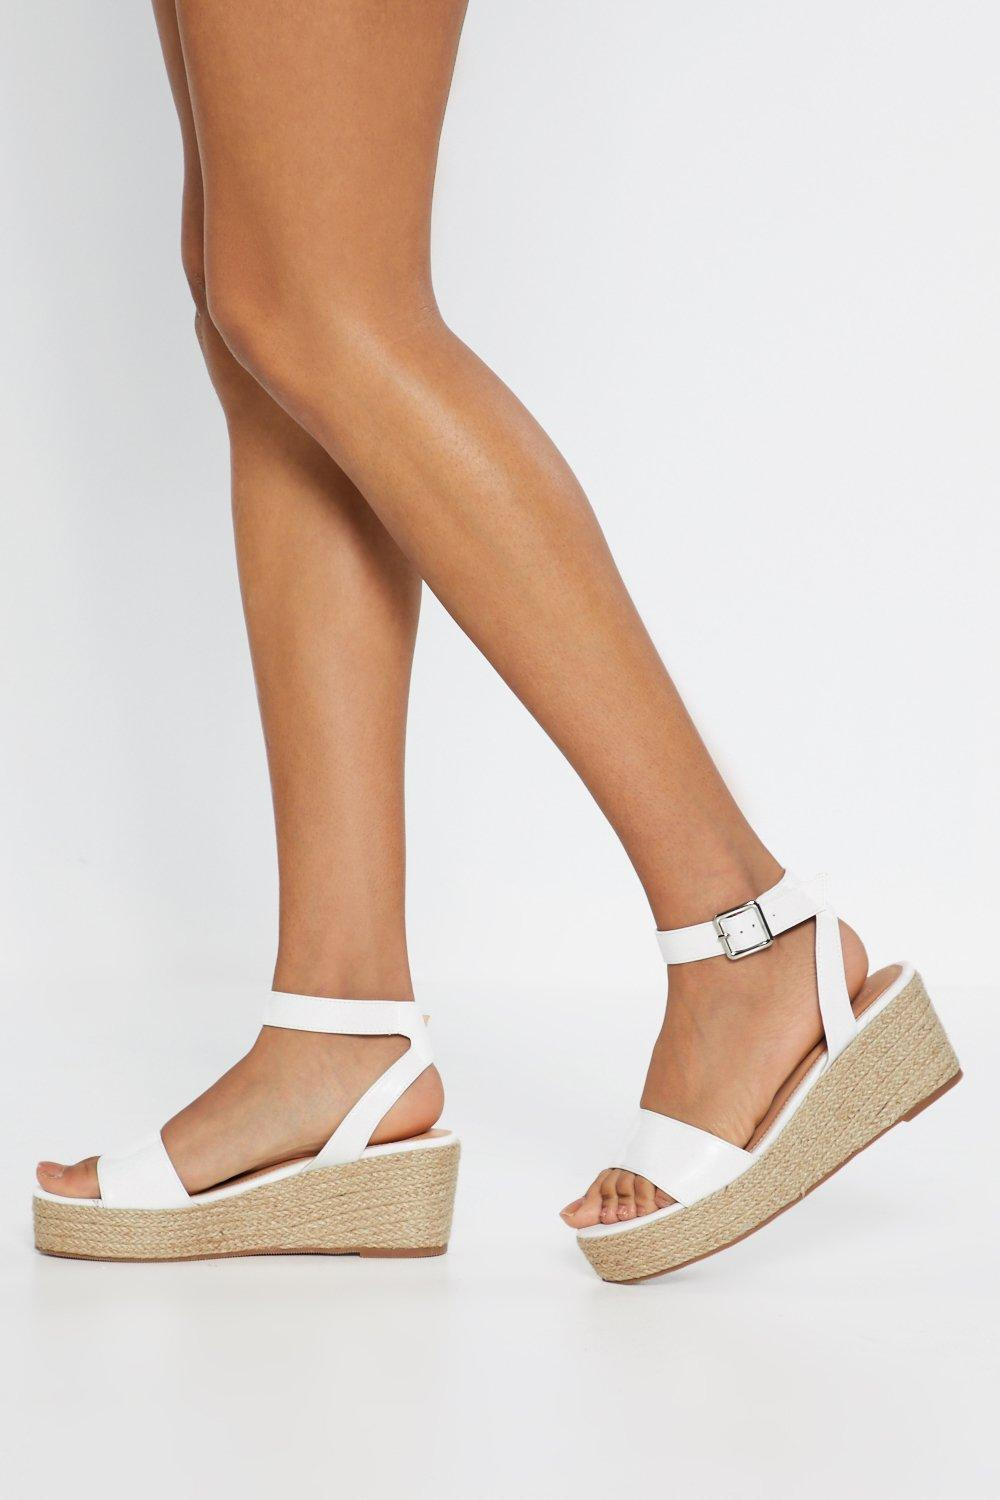 845dc948b0e Espadrille There Be Sun Wedge Sandals | Shop Clothes at Nasty Gal!